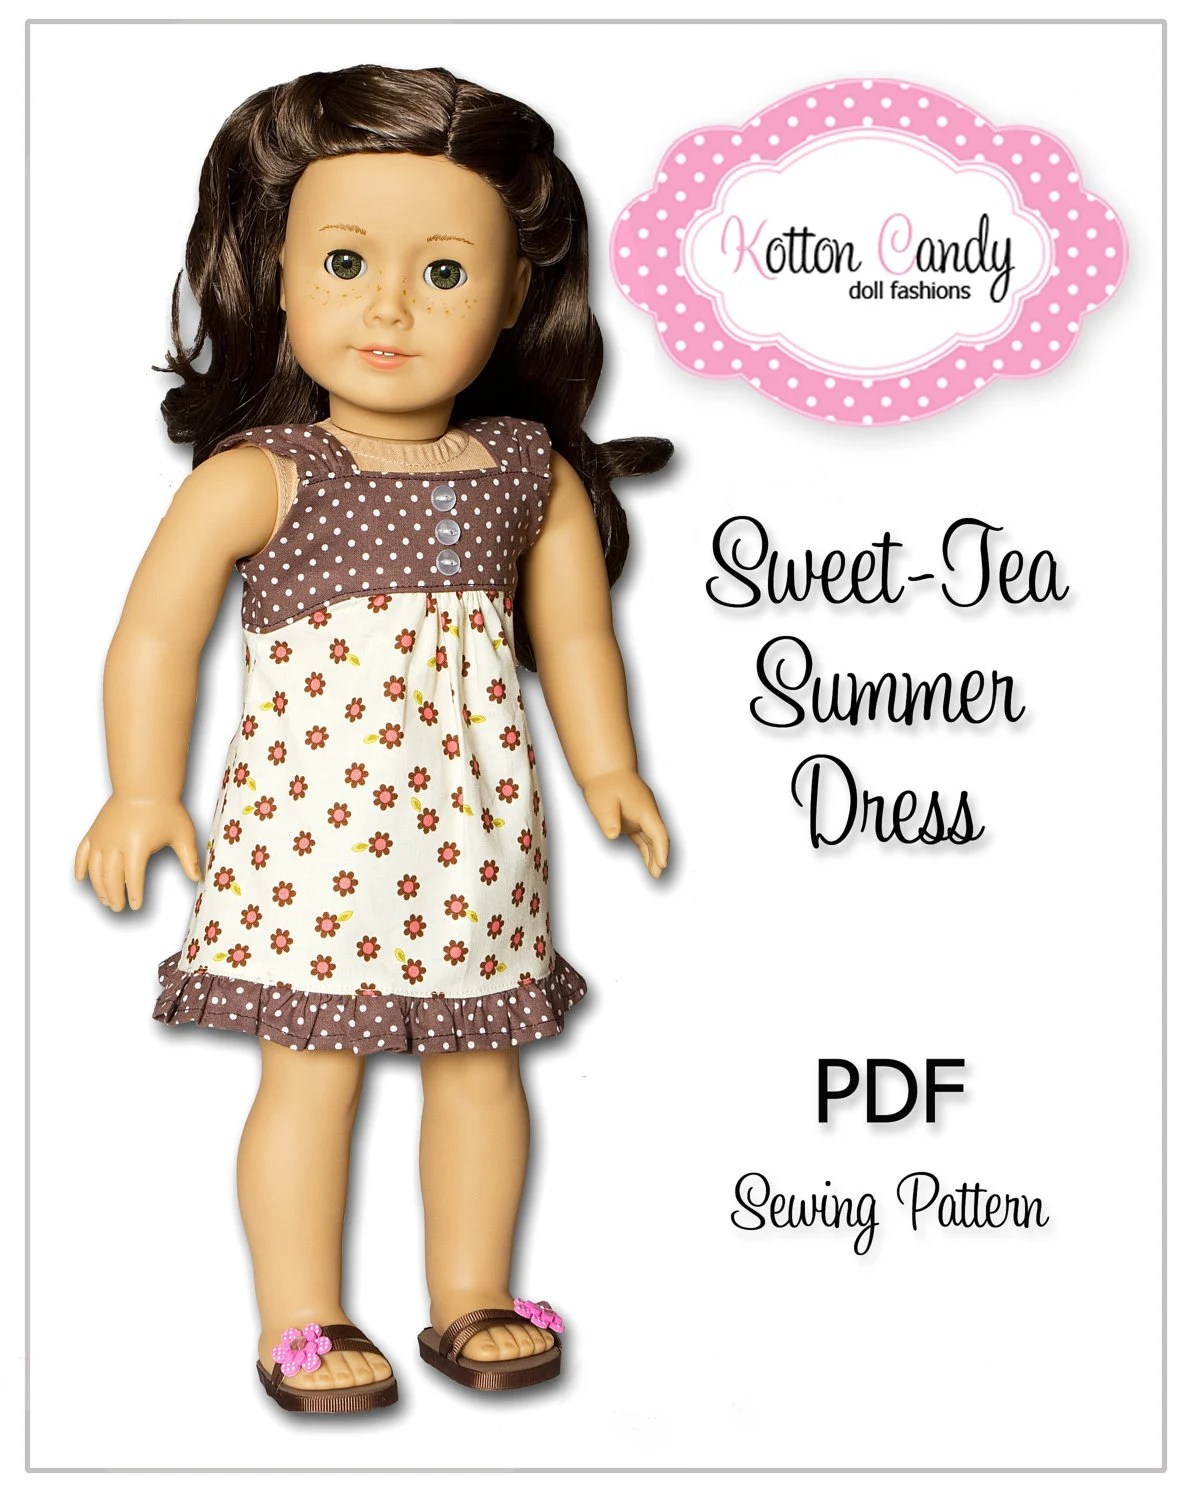 Sewing Pattern For 18 Inch American Girl Doll Clothes